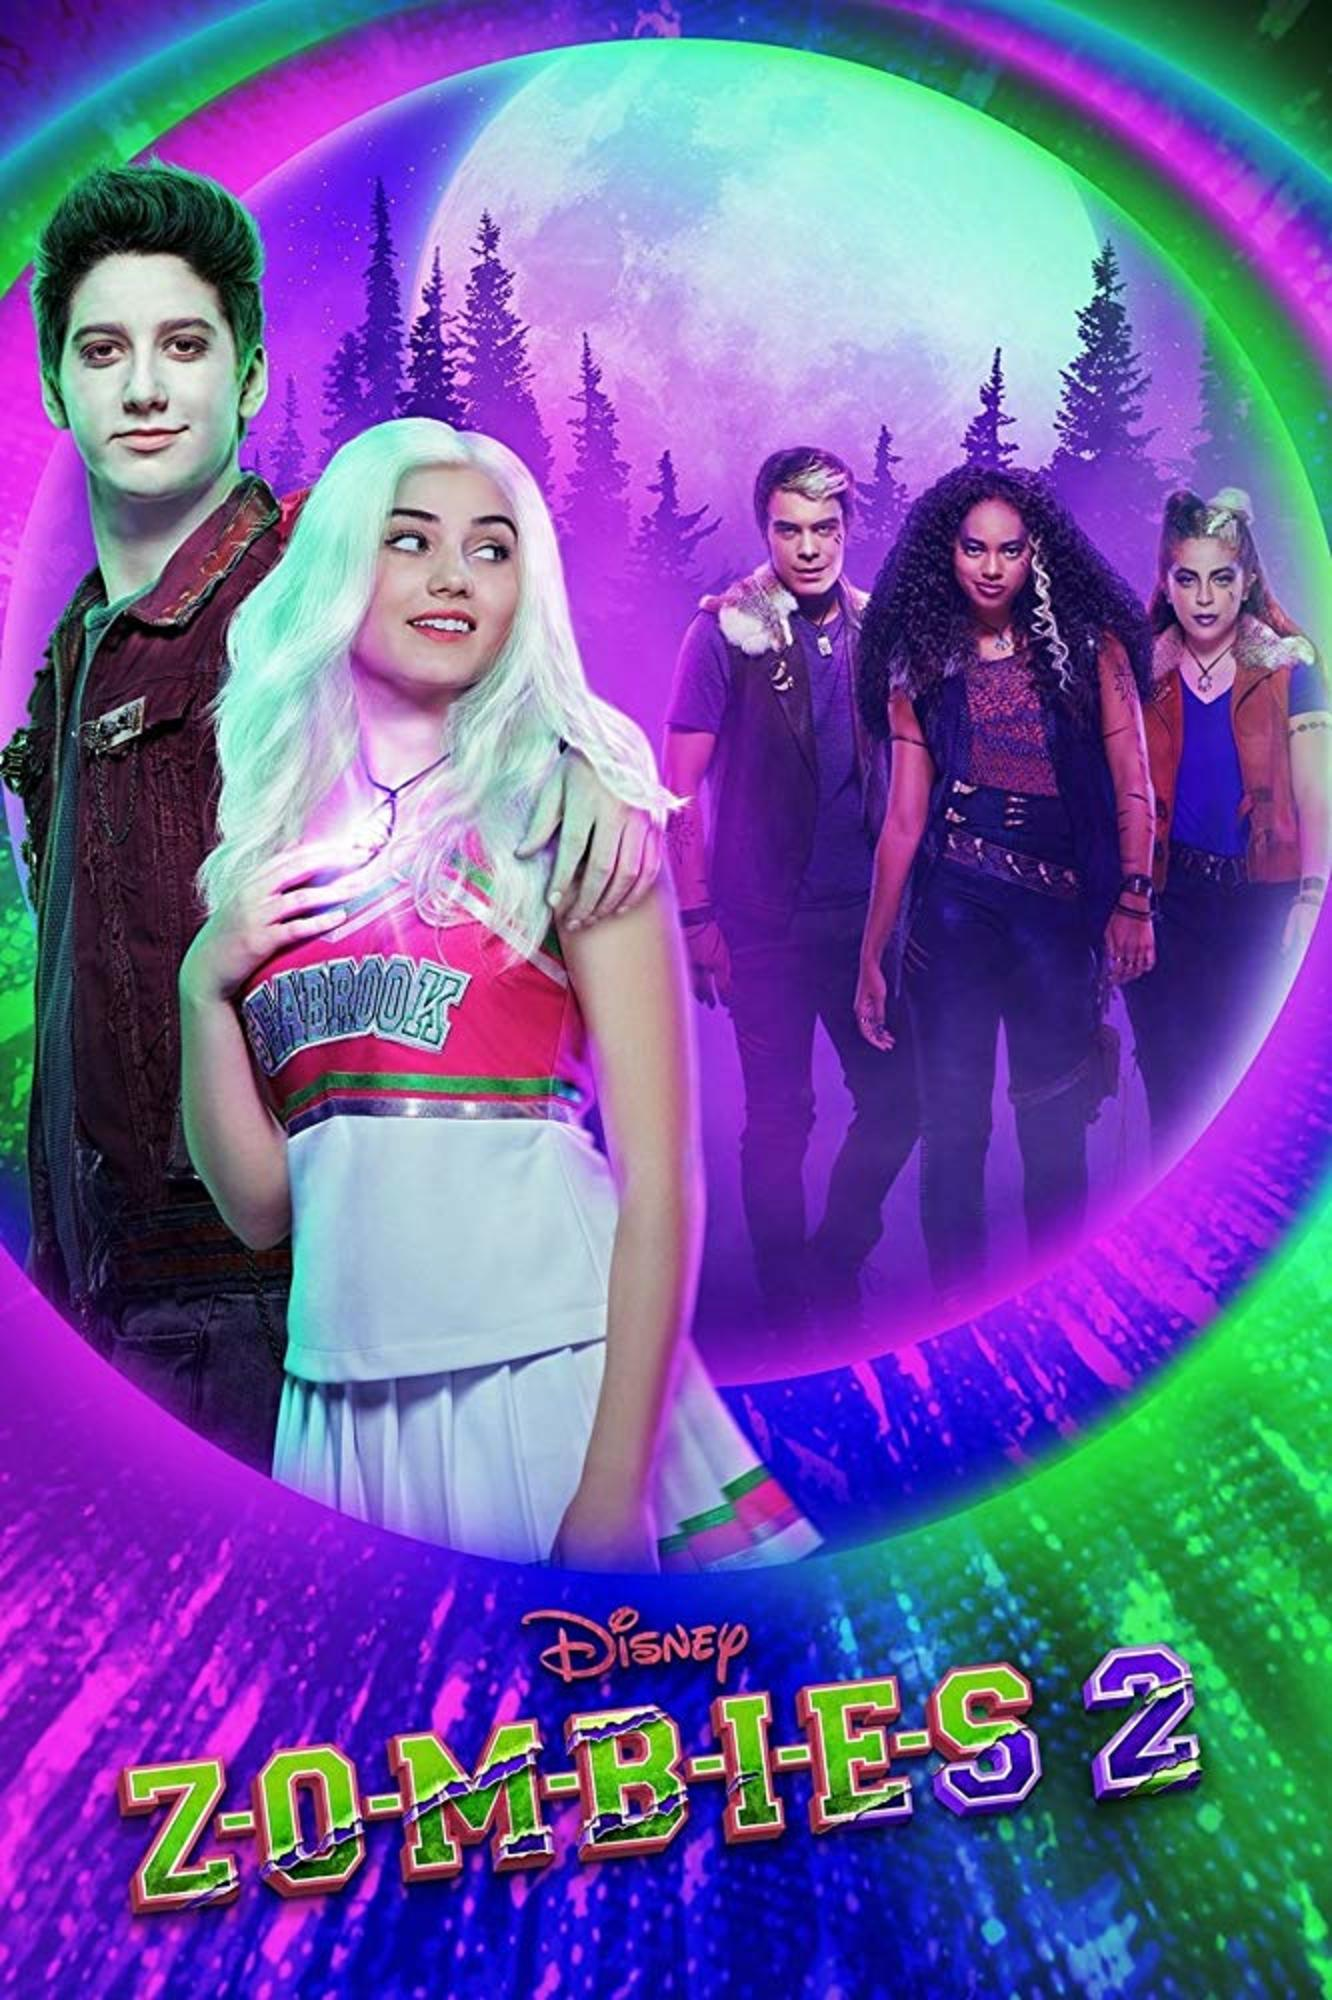 affiche poster zombies 2 disney channel